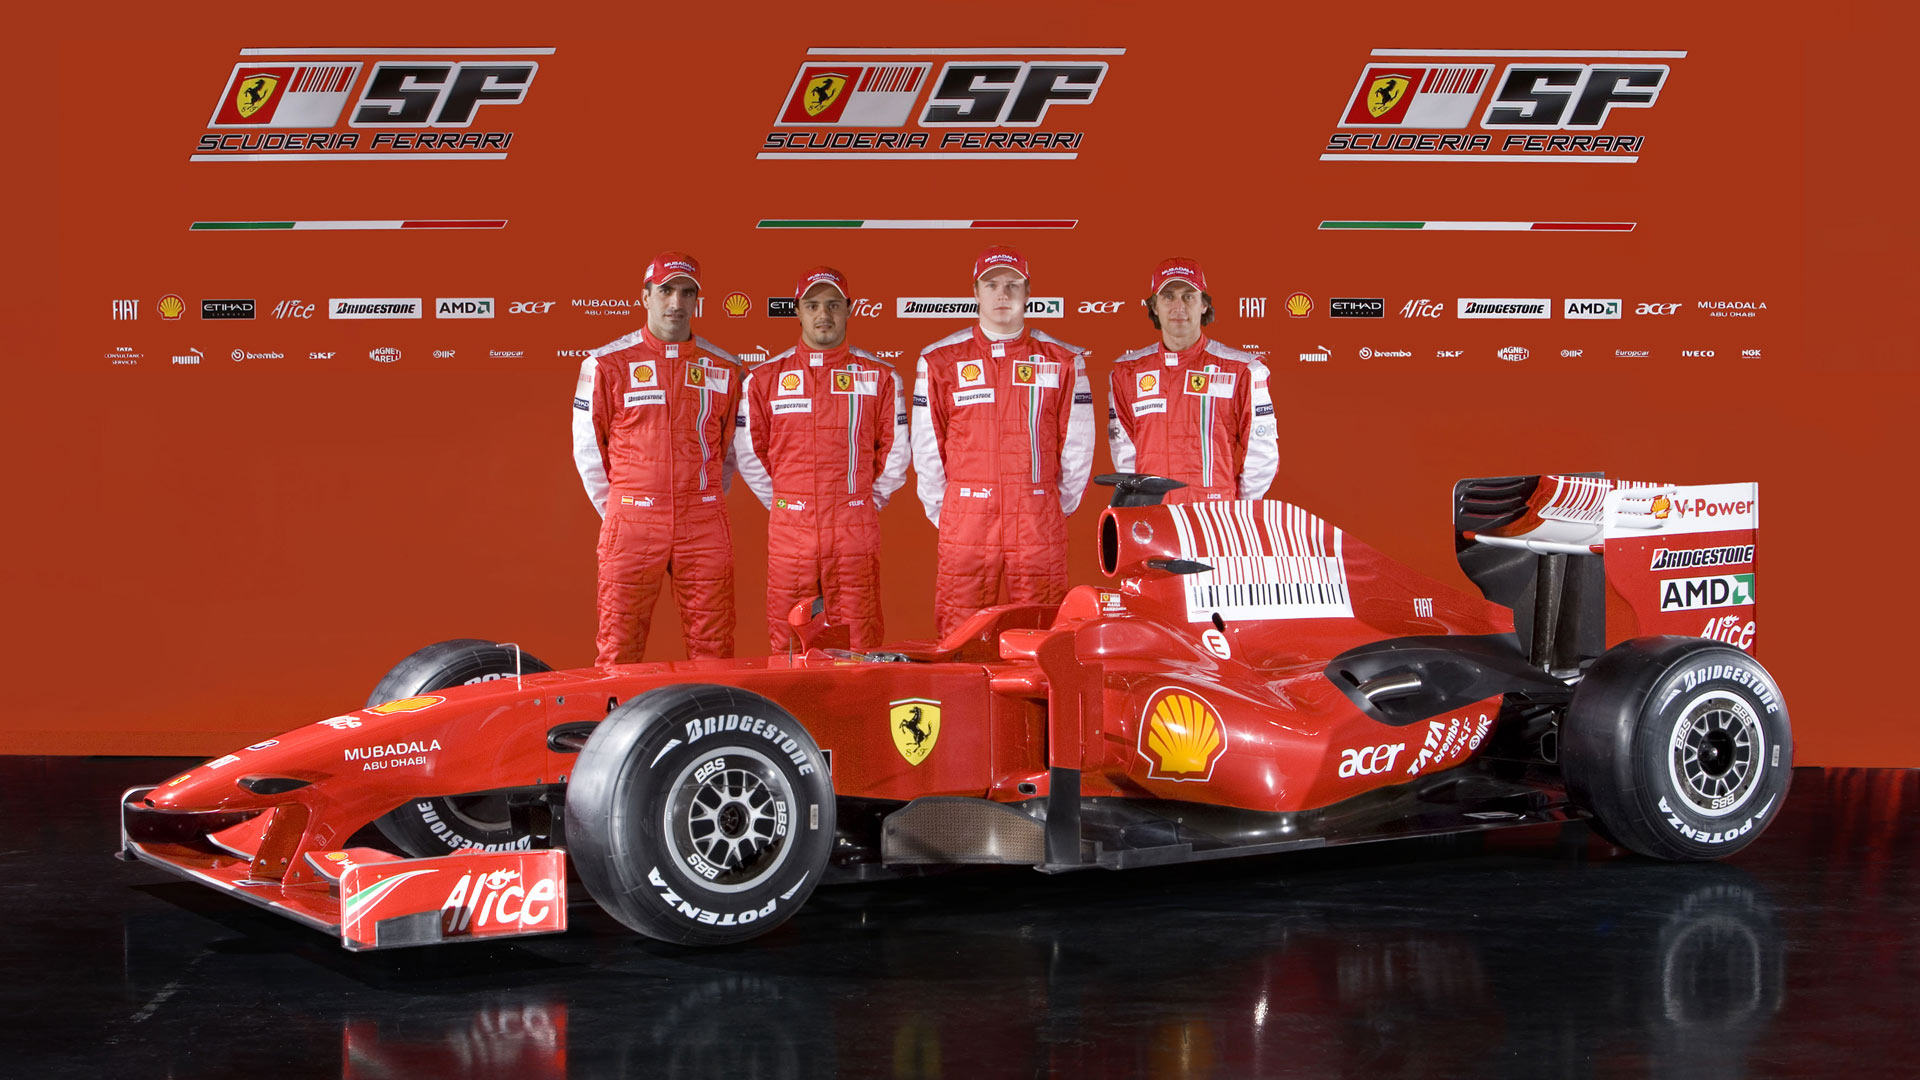 Image Ferrari F60 Wallpaper 2009 2 Jpg The Formula 1